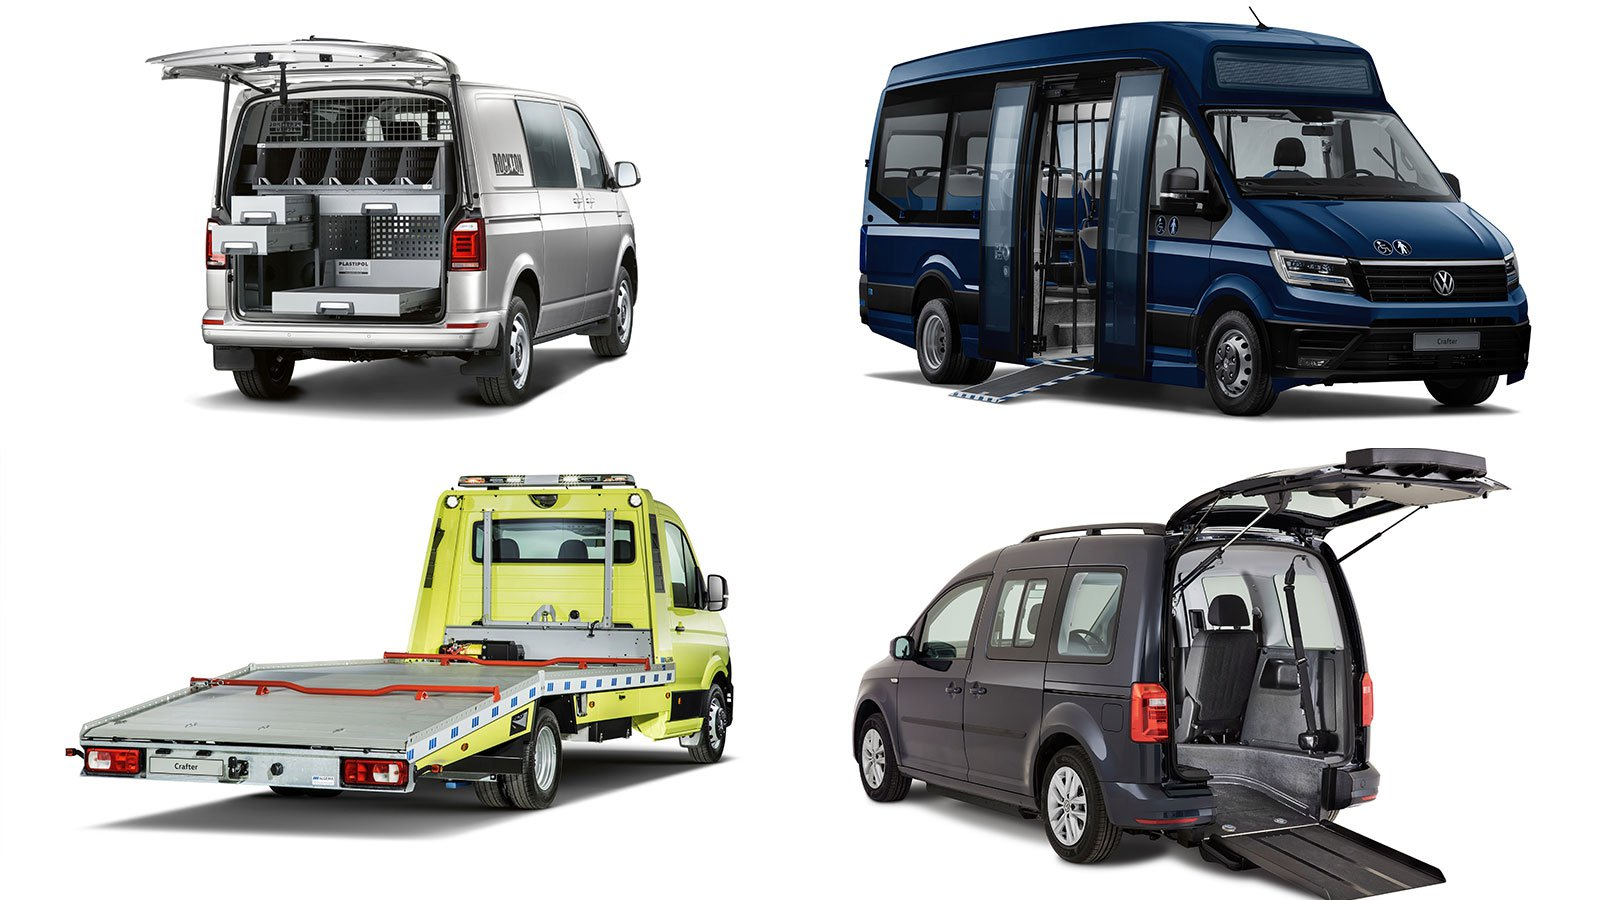 Volkswagen Commercial Vehicles has a range of conversion options for van owners